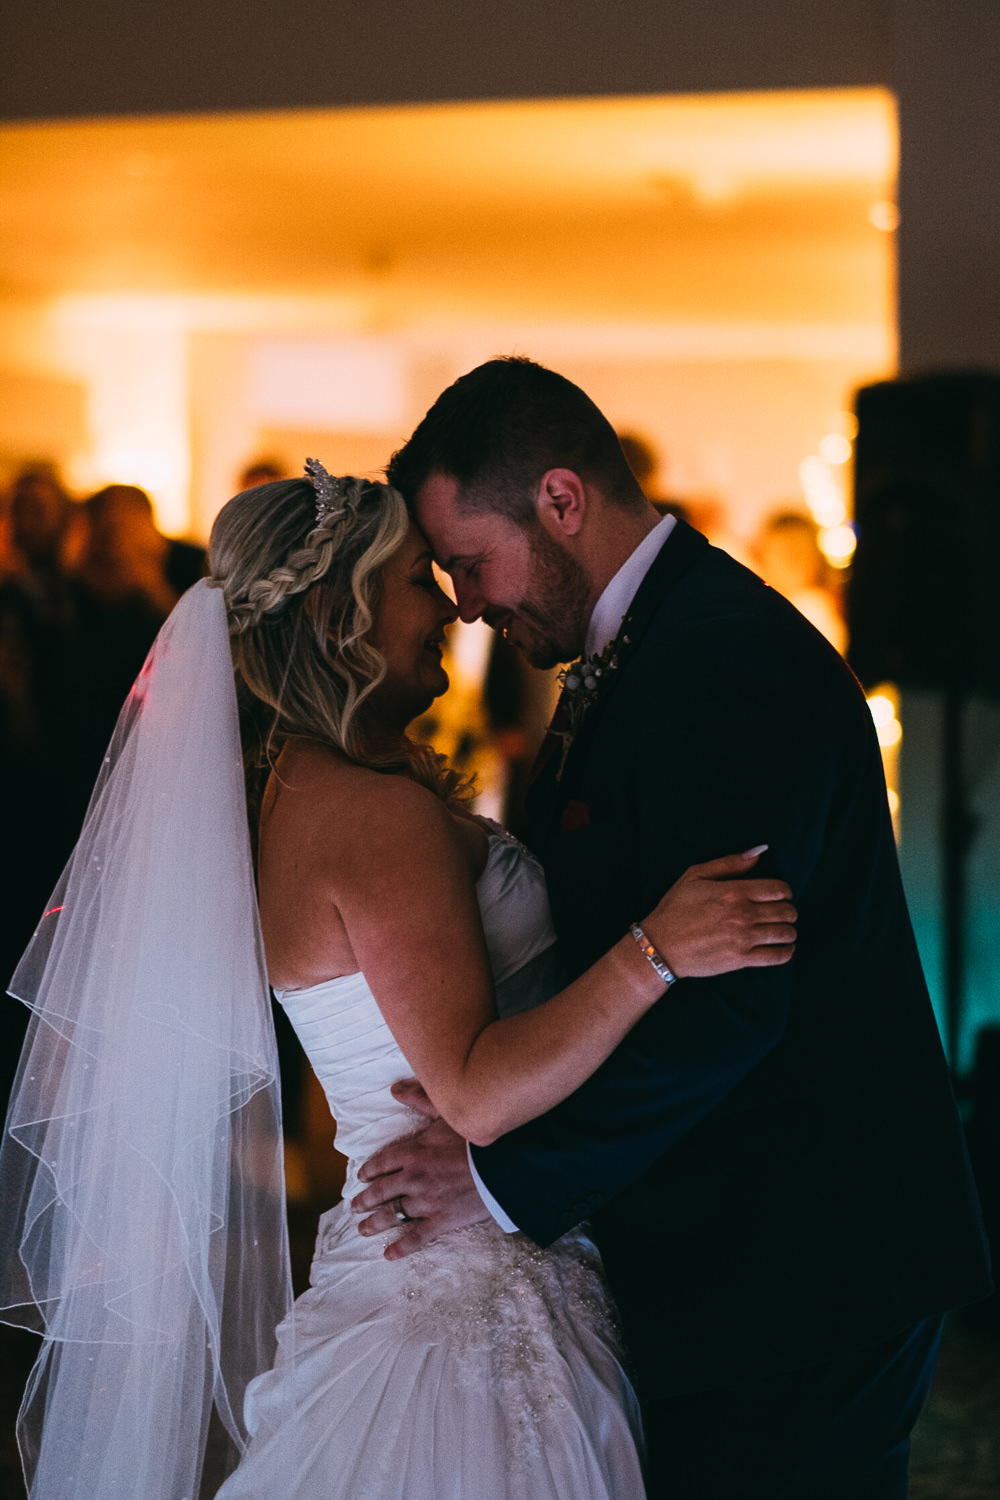 003 ROMANTIC FIRST DANCE PHOTO BRIDE AND GROOM THE BEAR HOTEL WEDDING PHOTOGRAPHY COWBRIDGE